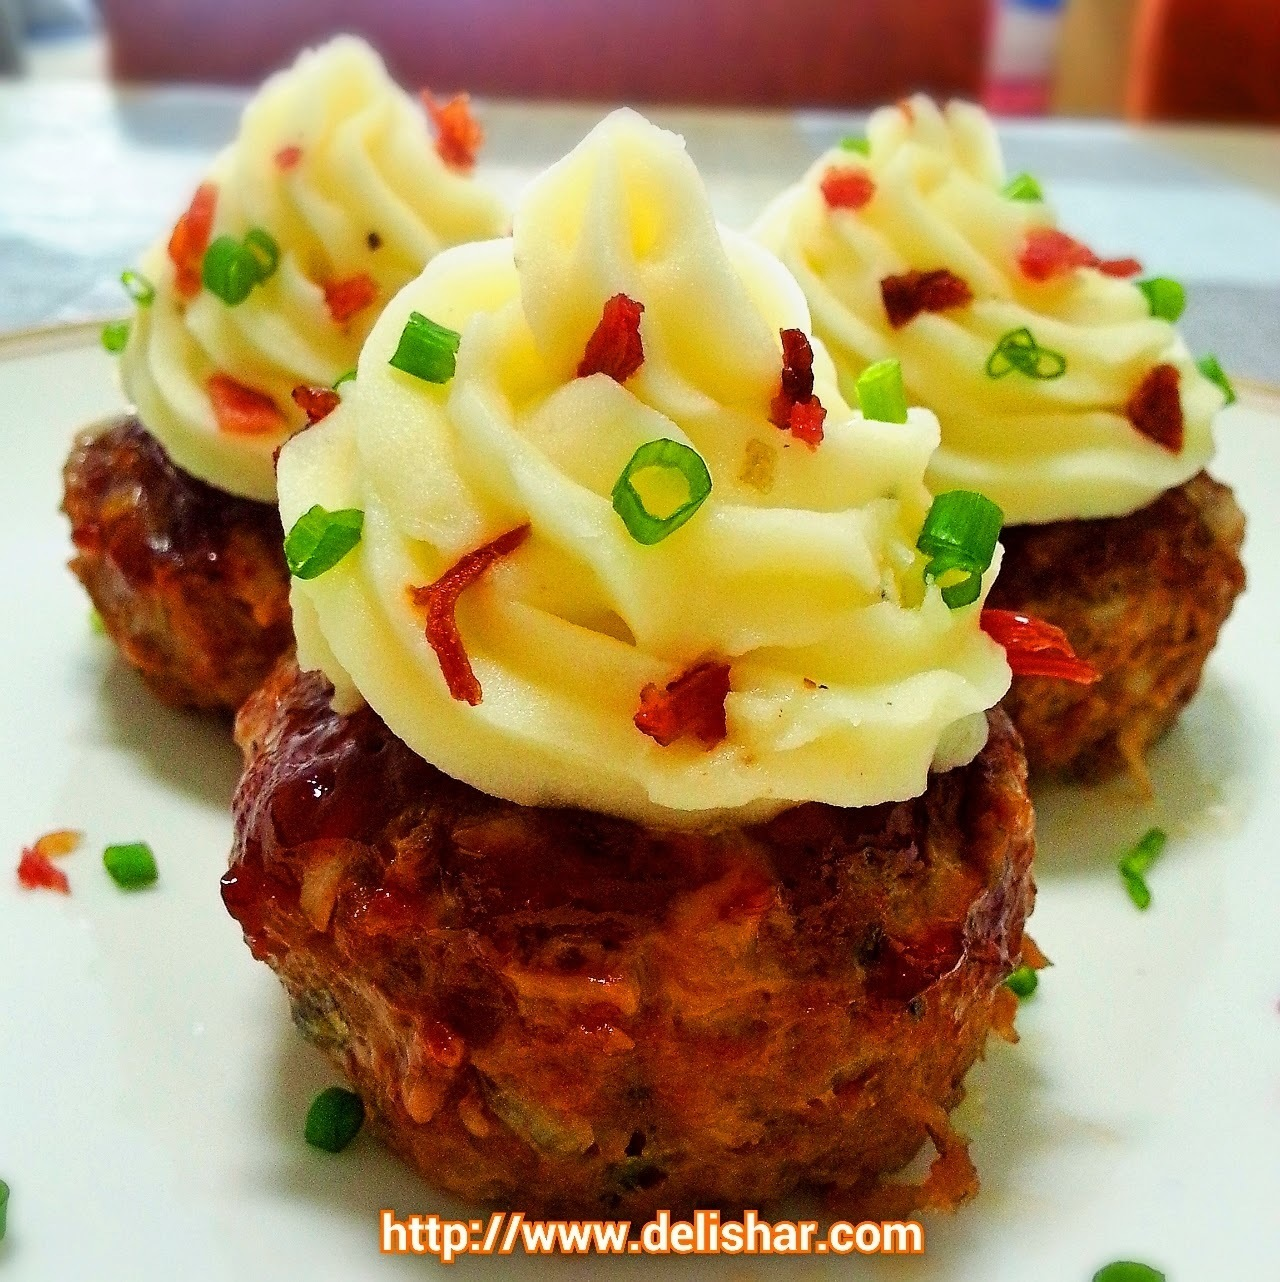 Stuffed Meatloaf Cupcakes with Mashed Potatoes Frosting